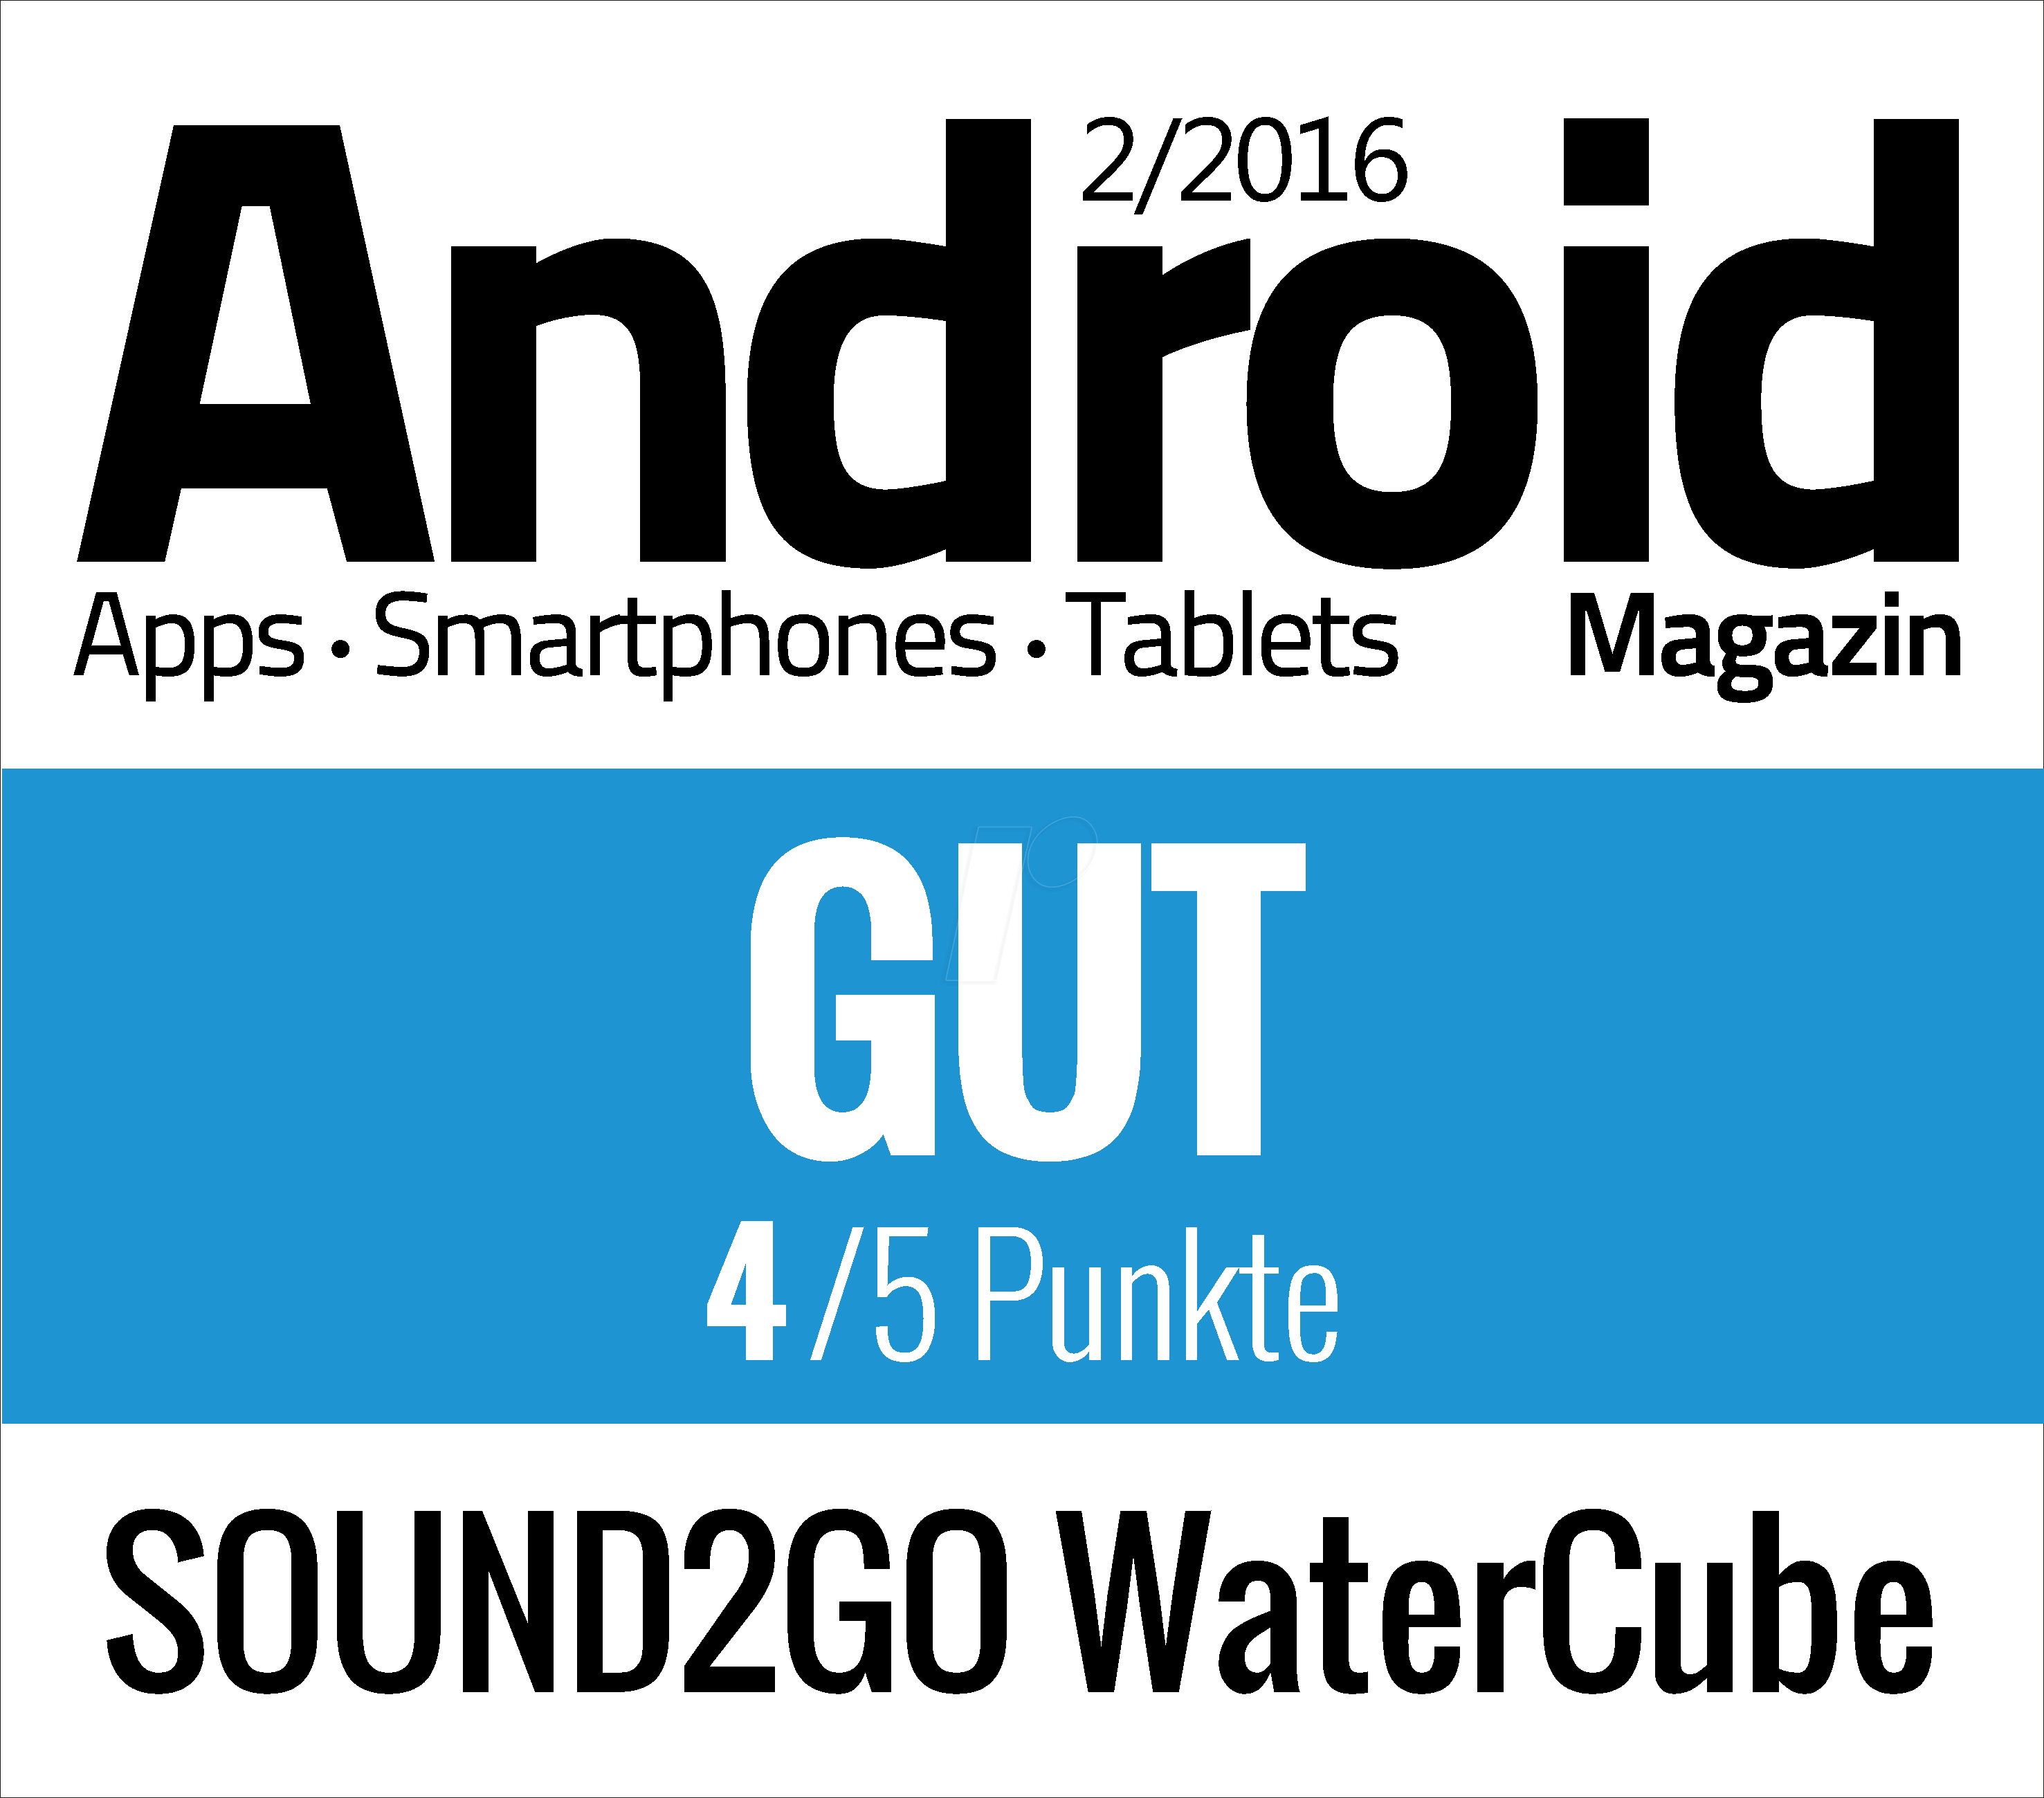 https://cdn-reichelt.de/bilder/web/xxl_ws/I900/AM_TESTLOGO_SOUND2GOWATERCUBE_GUT.png